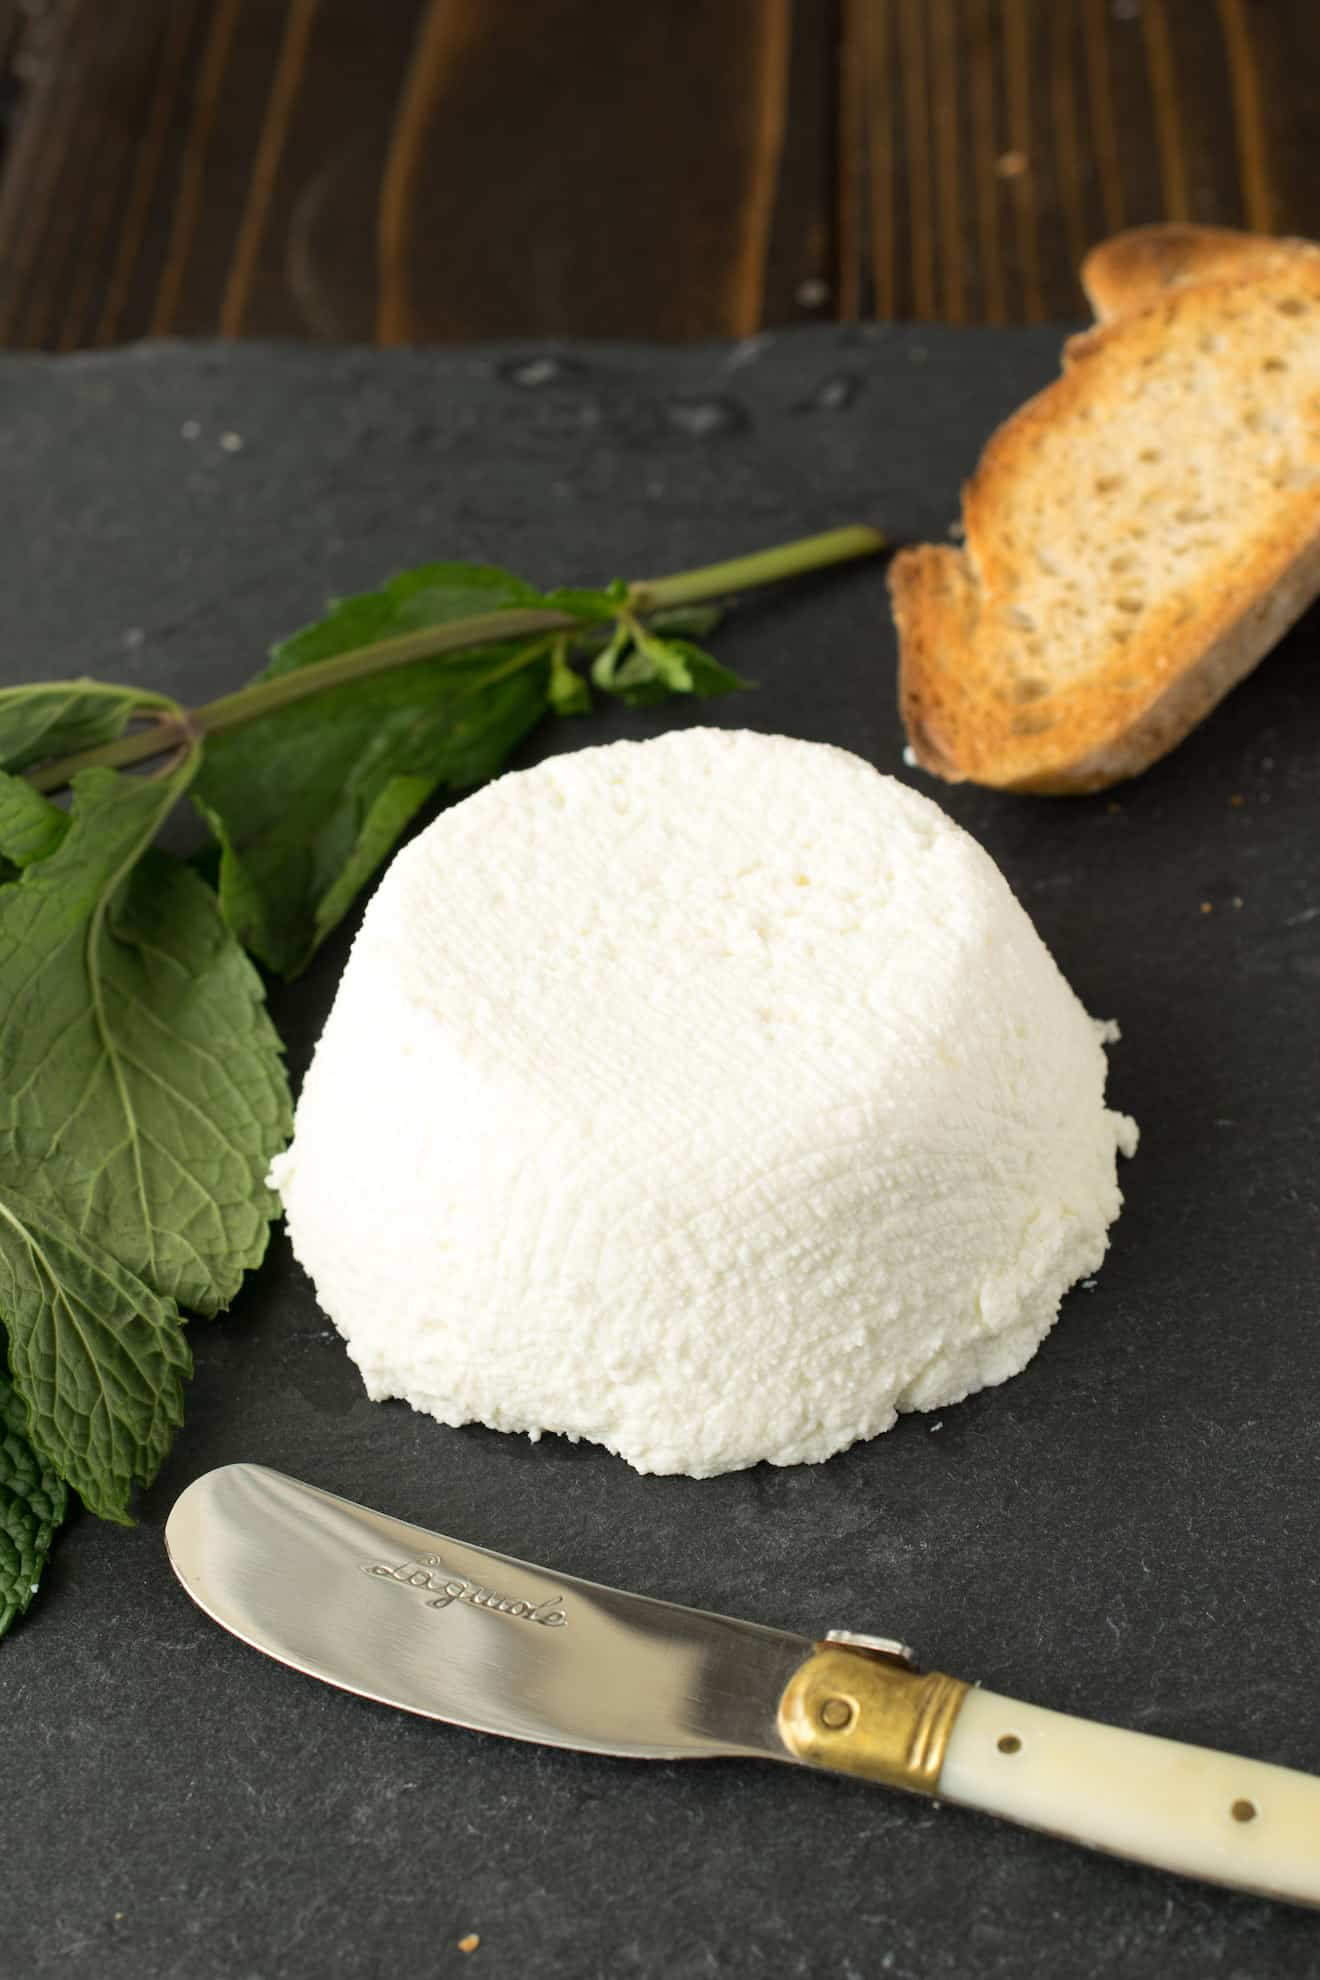 Homemade ricotta with crusty bread and a knife.